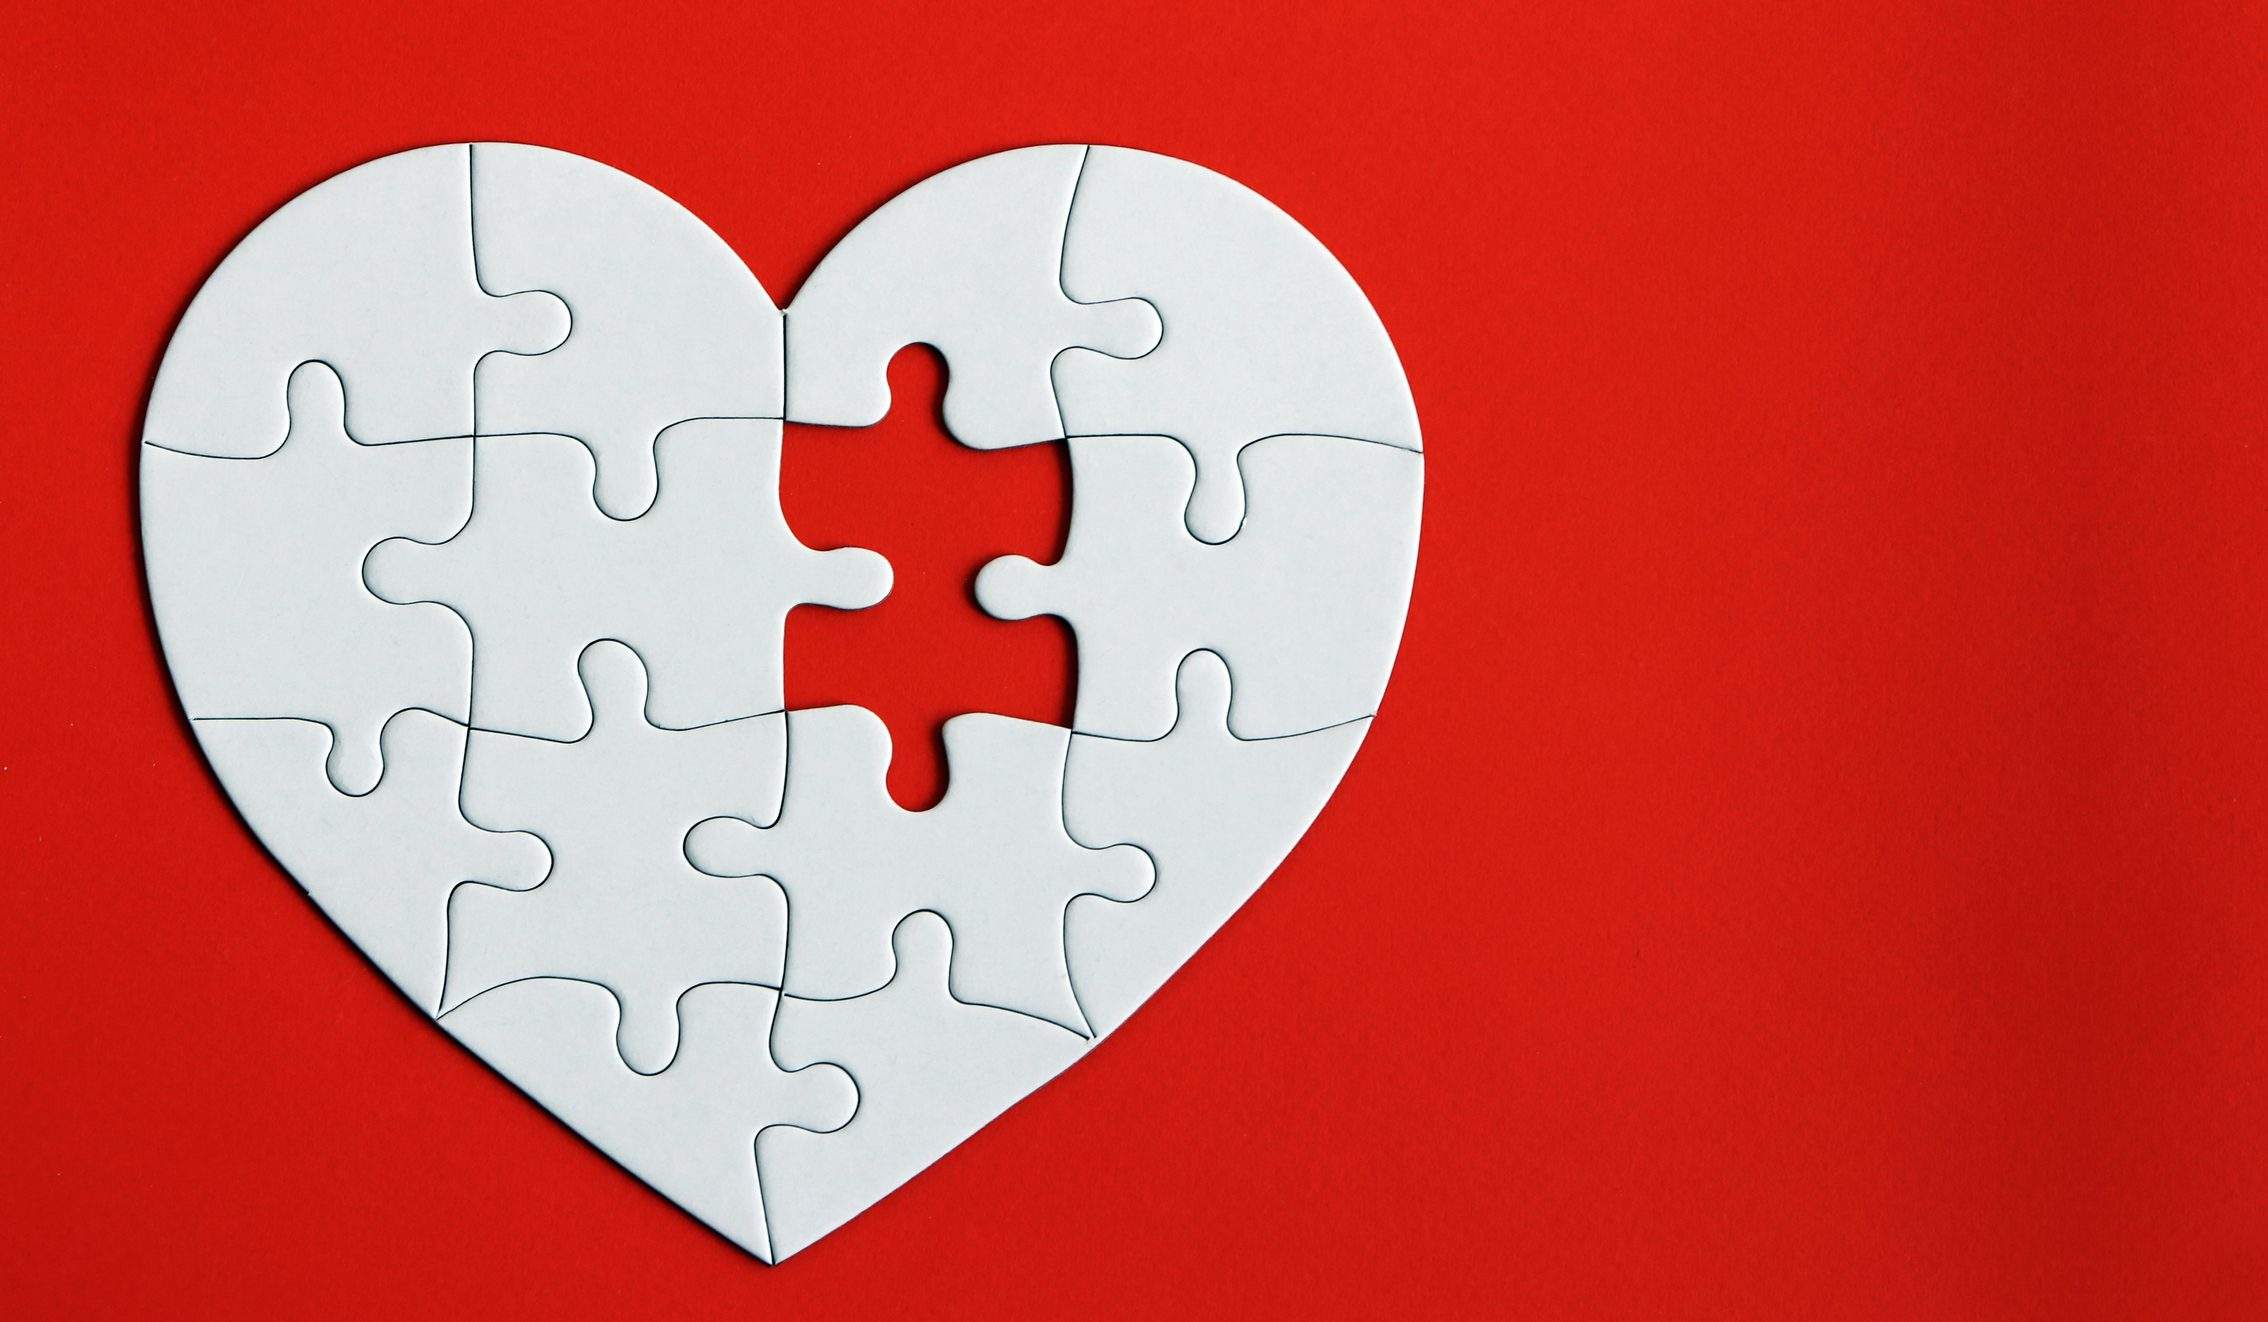 Heart puzzle on the red background